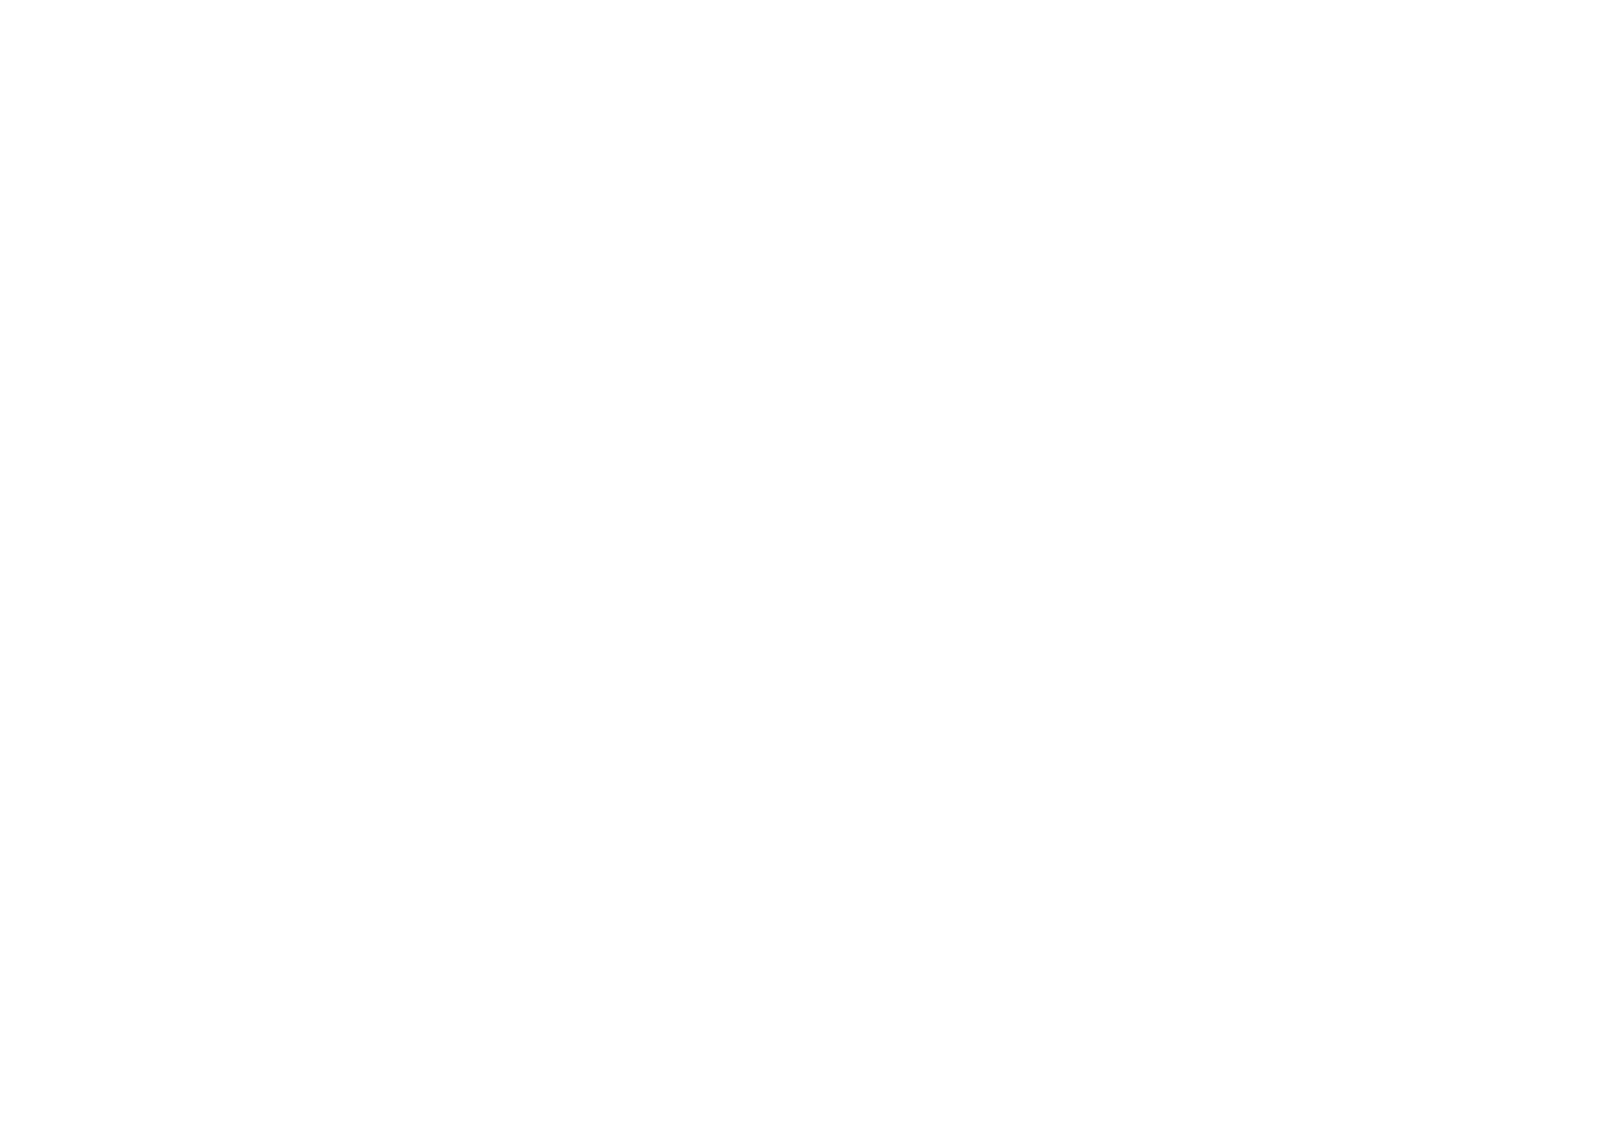 optique gustin opticien expert